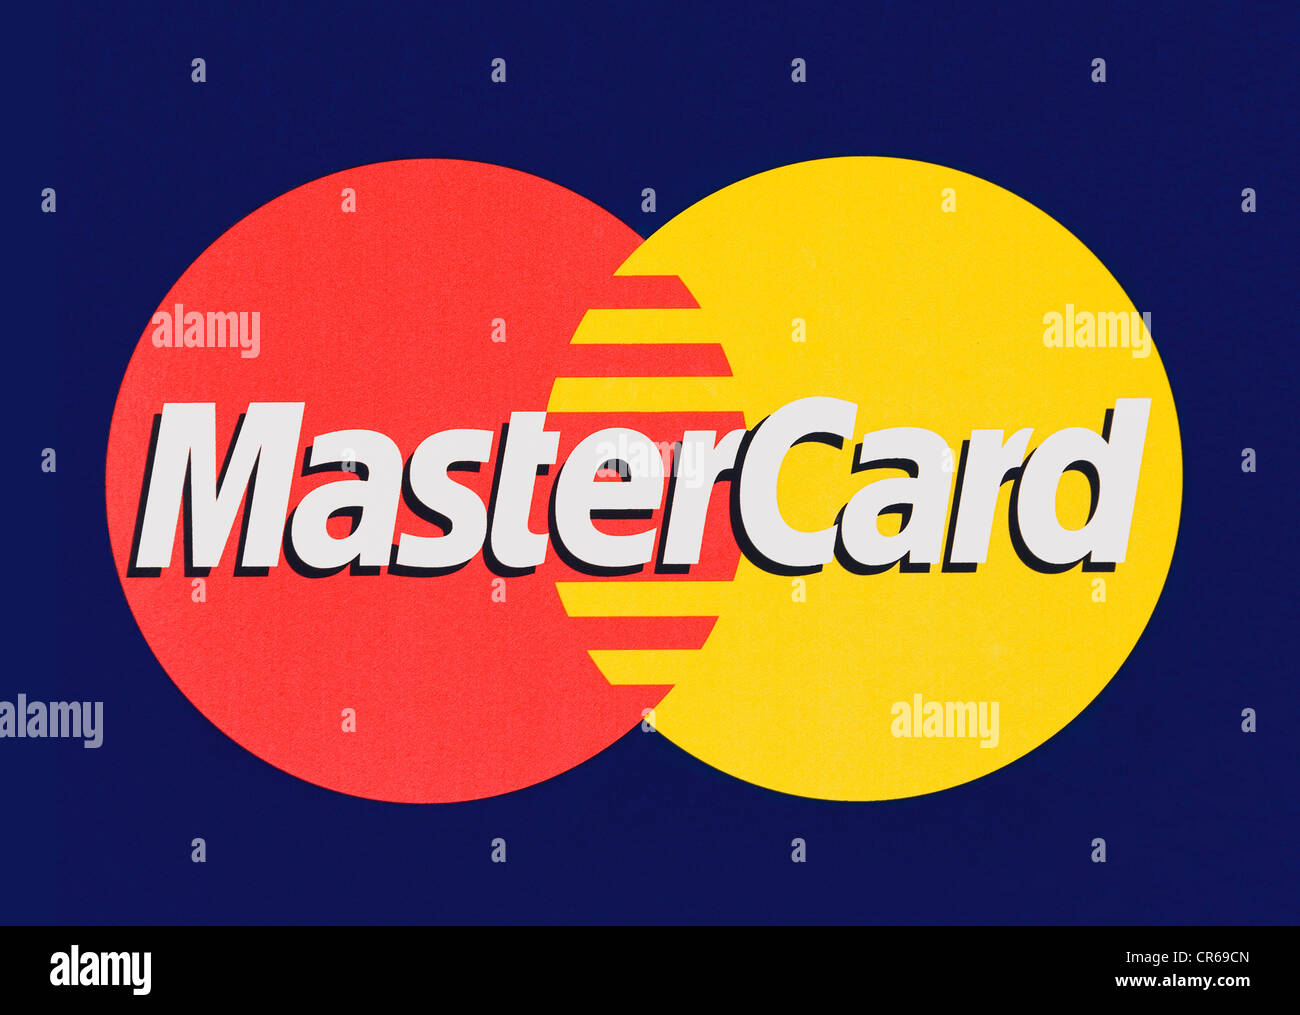 Kreditkartenorganisation MasterCard Logo, MasterCard International, Stockbild